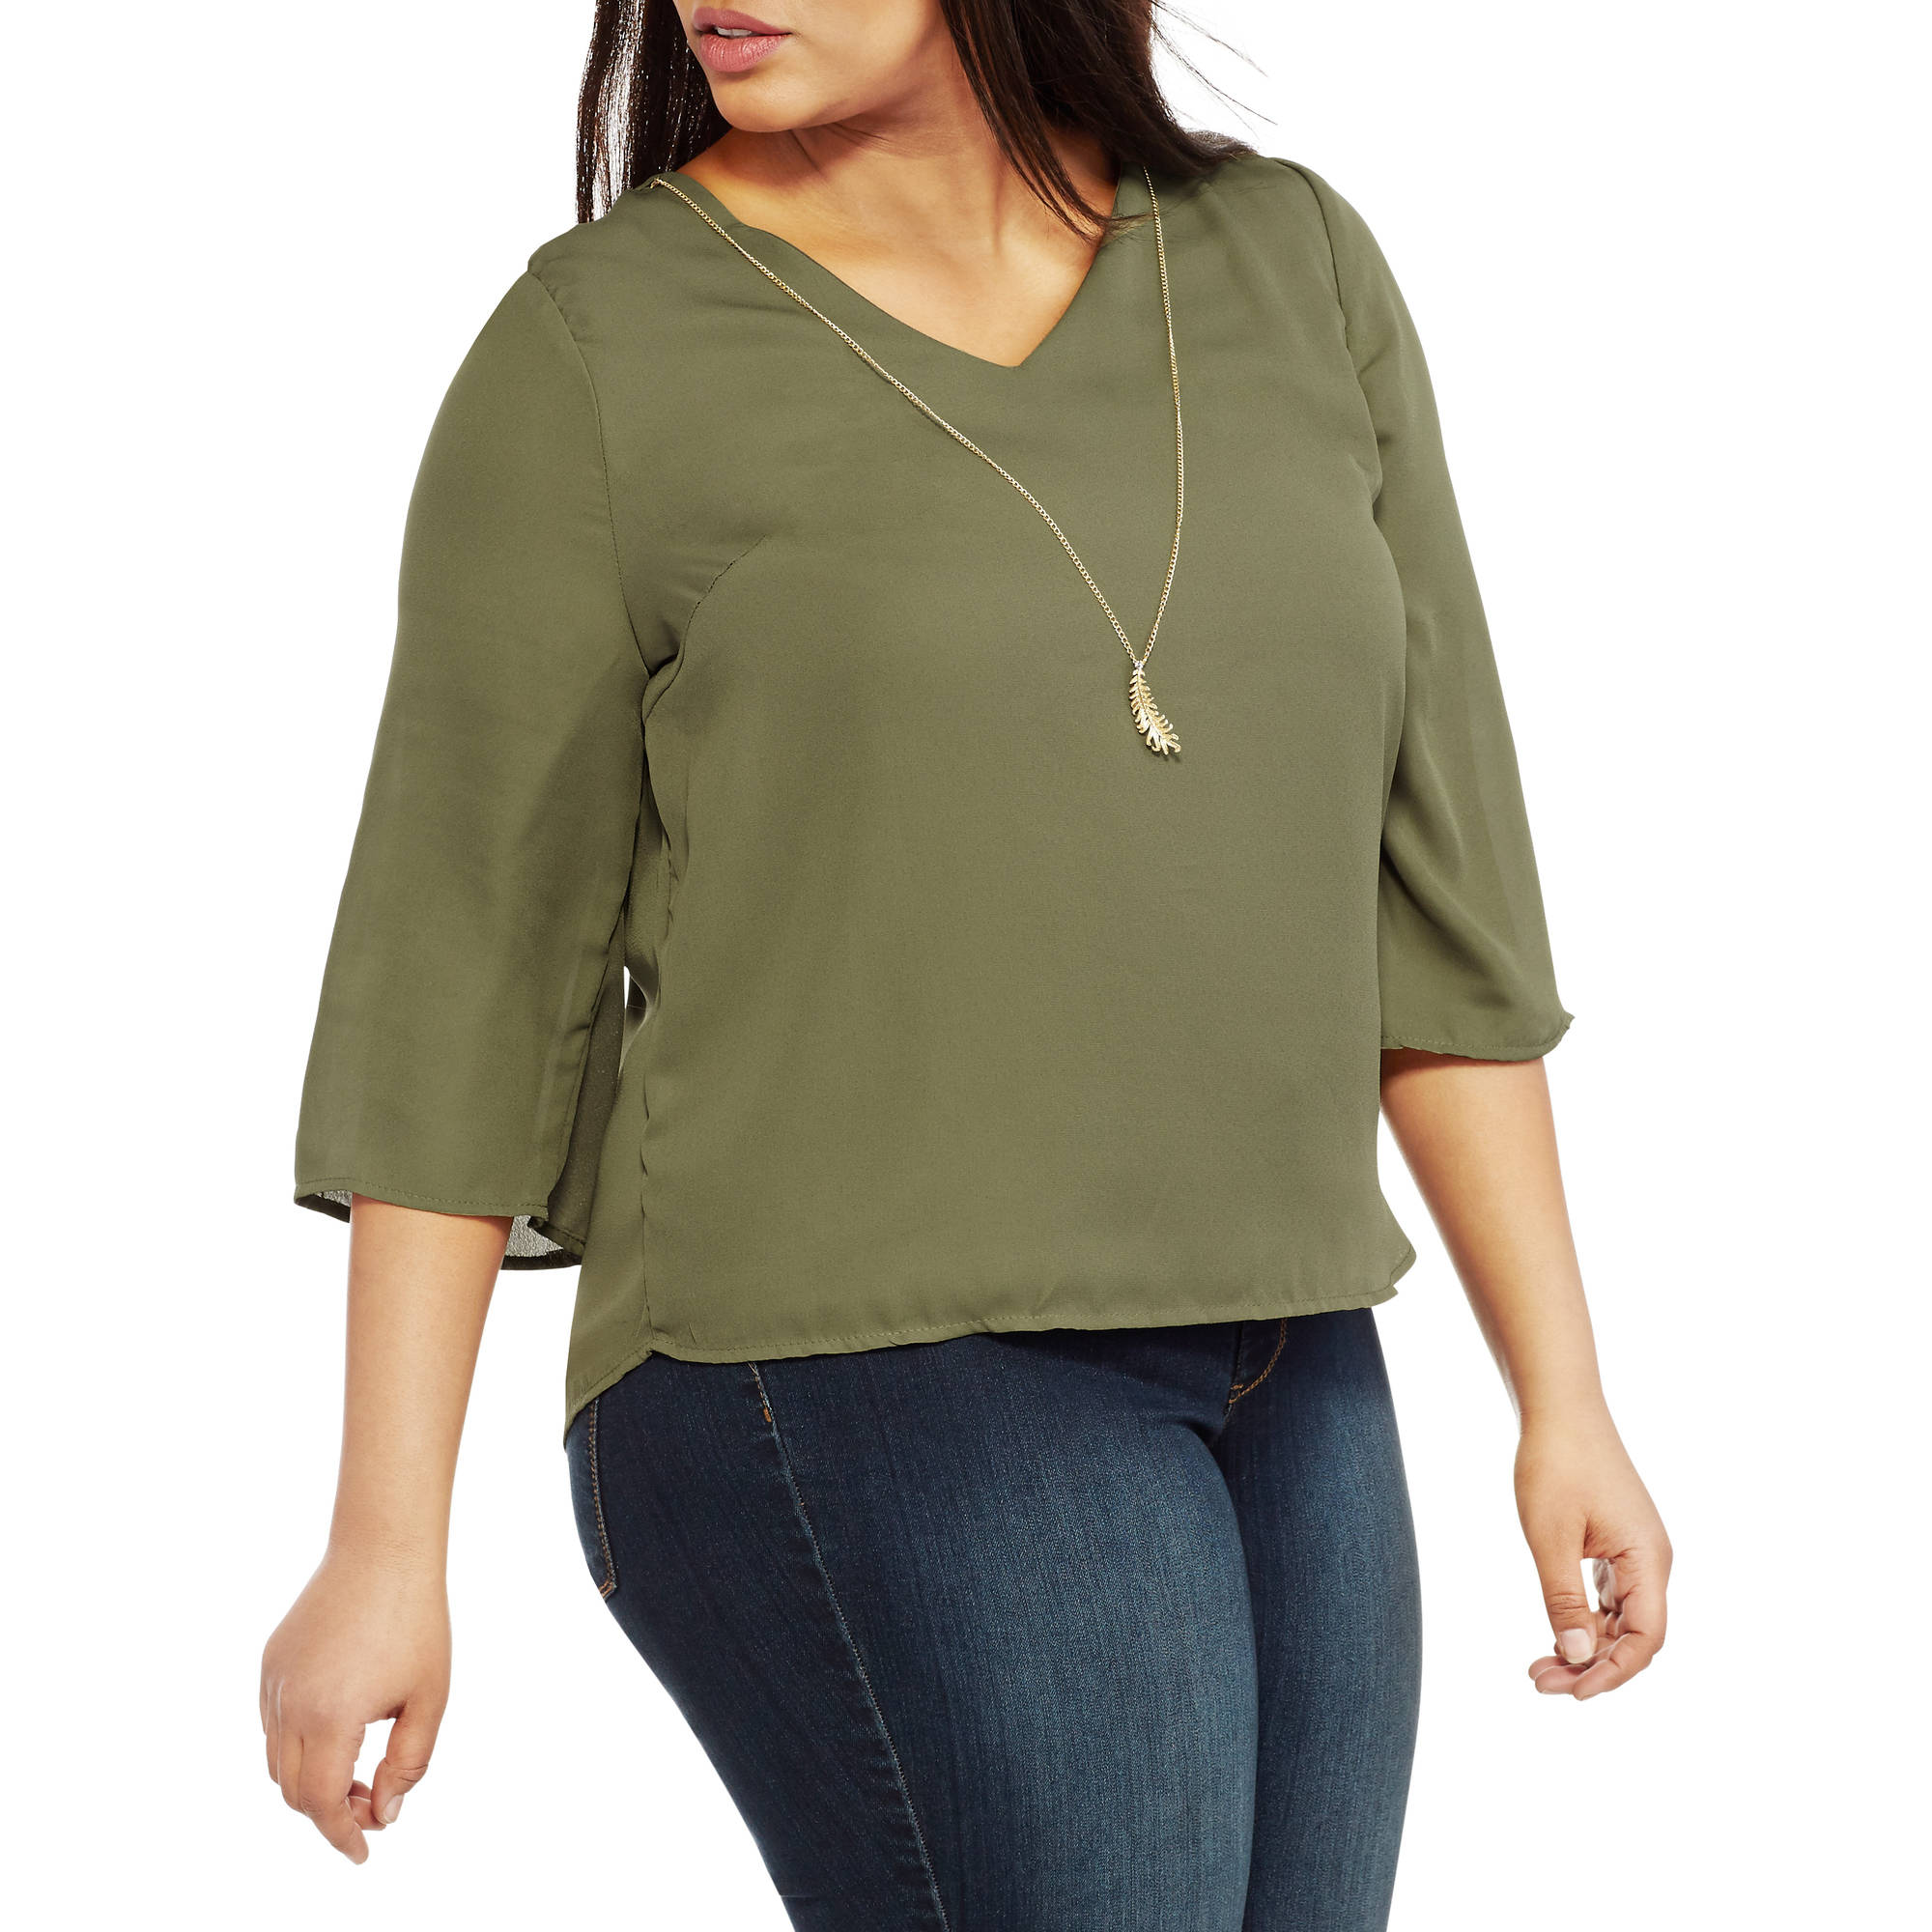 Extra Touch Women's Plus Open Back Long Sleeve Shirt